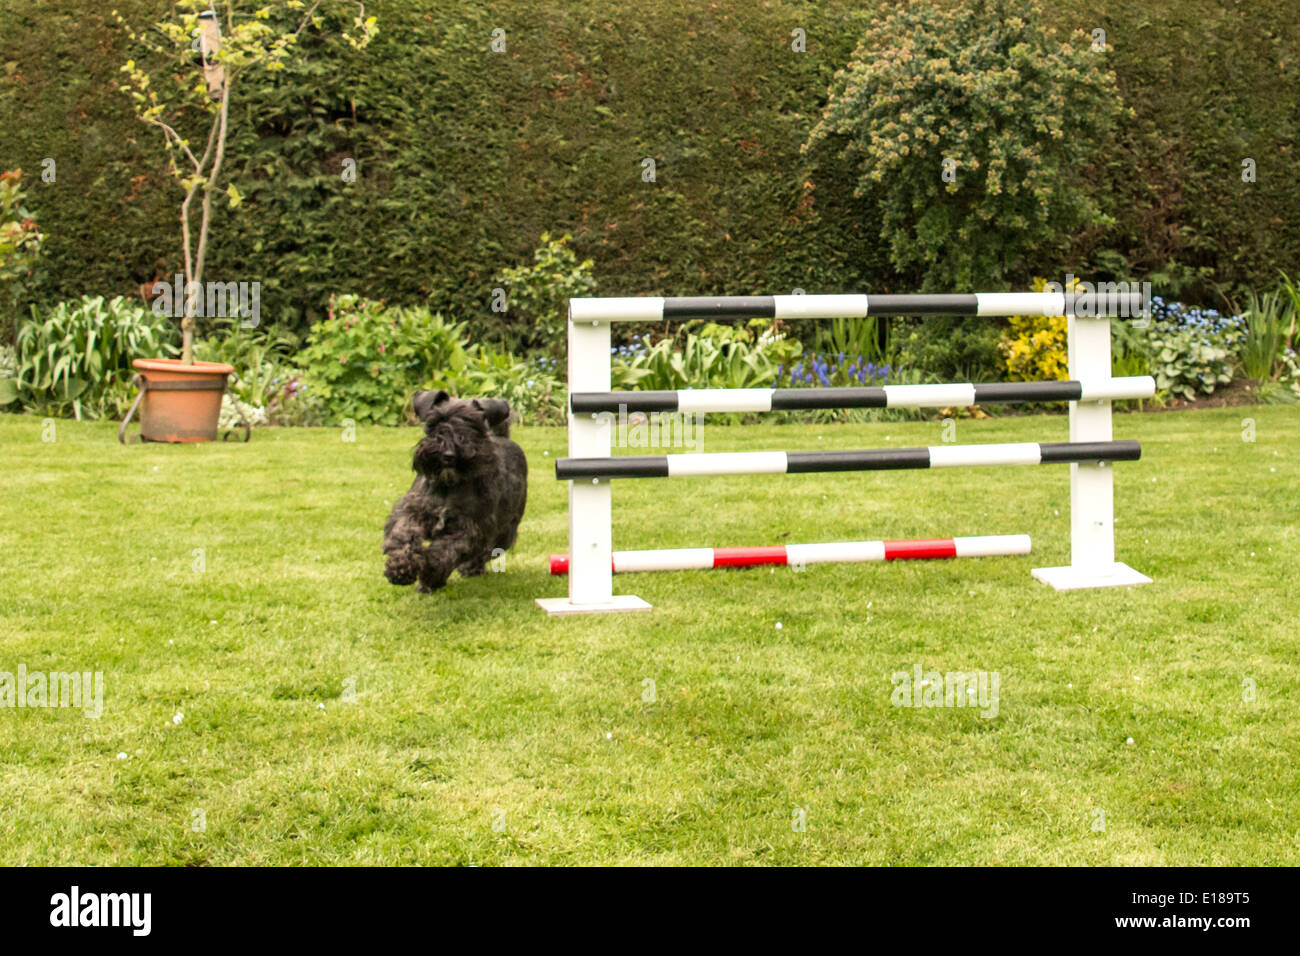 Black Schnauzer dog practicing agility/jumping in the garden dodging the jump(2 of 4 ) - Stock Image